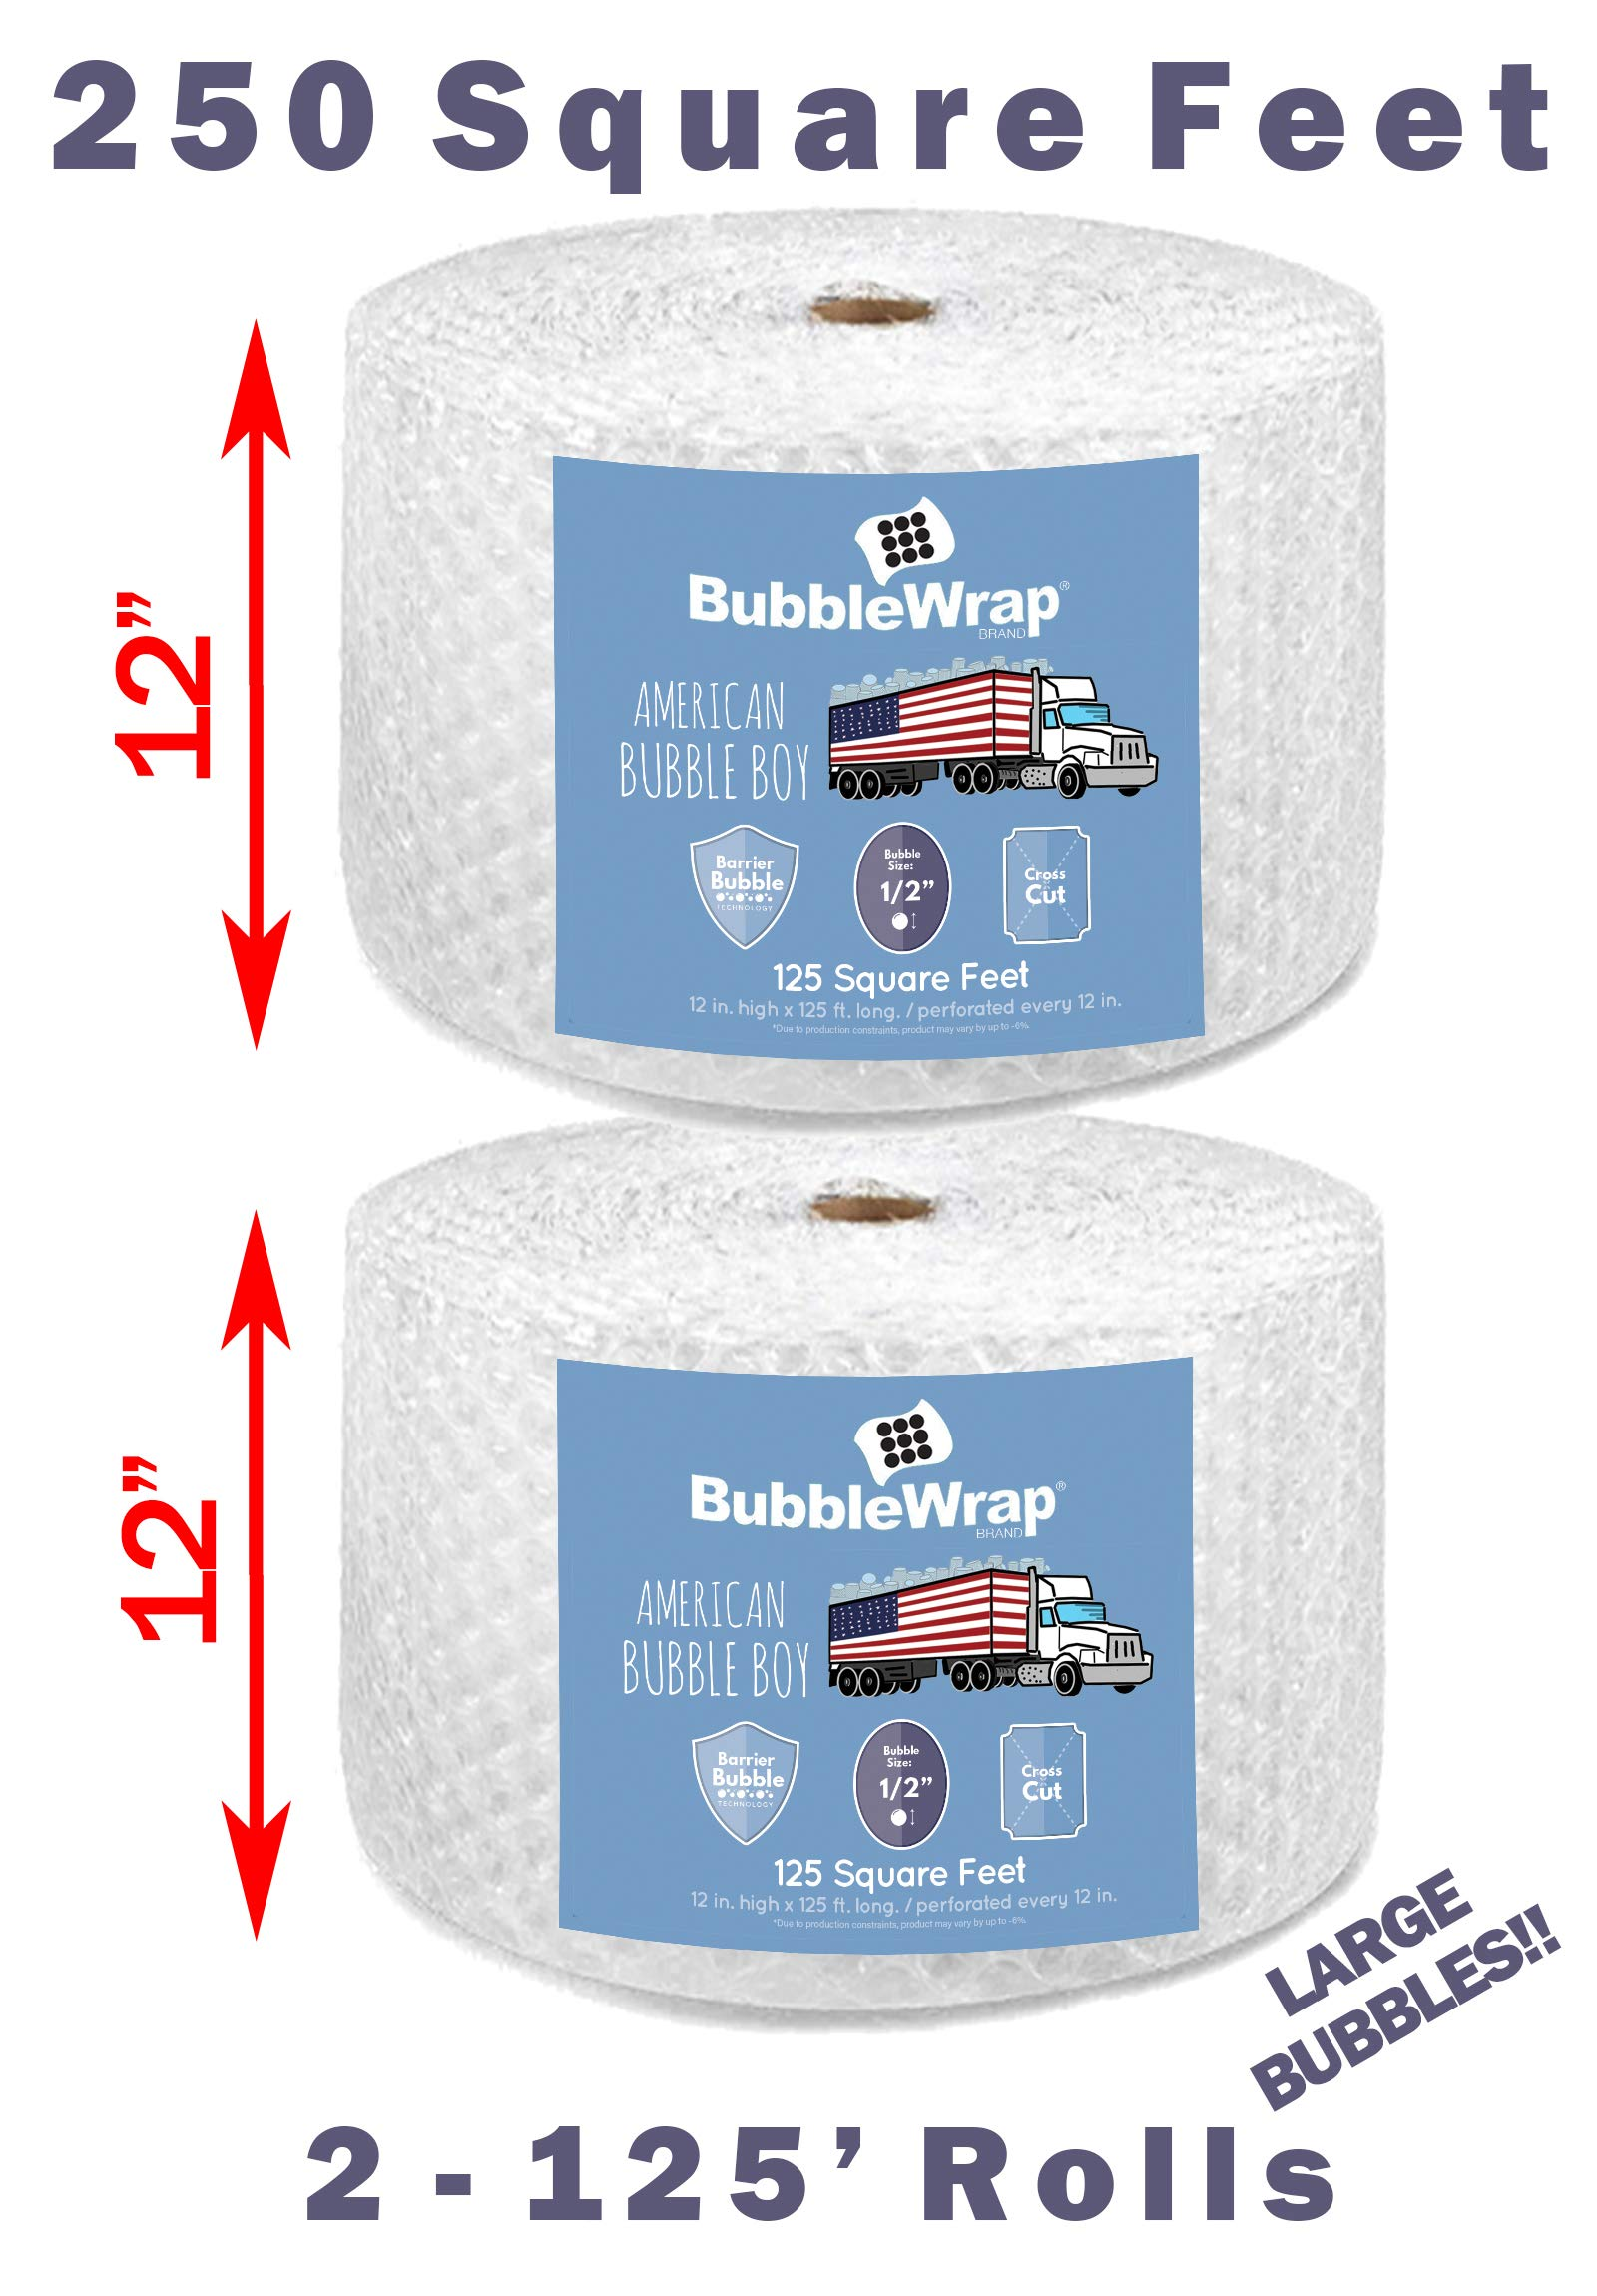 Official Sealed Air Bubble Wrap - American Bubble Boy (250' Large (1/2'') Bubble Wrap) by American Bubble boy